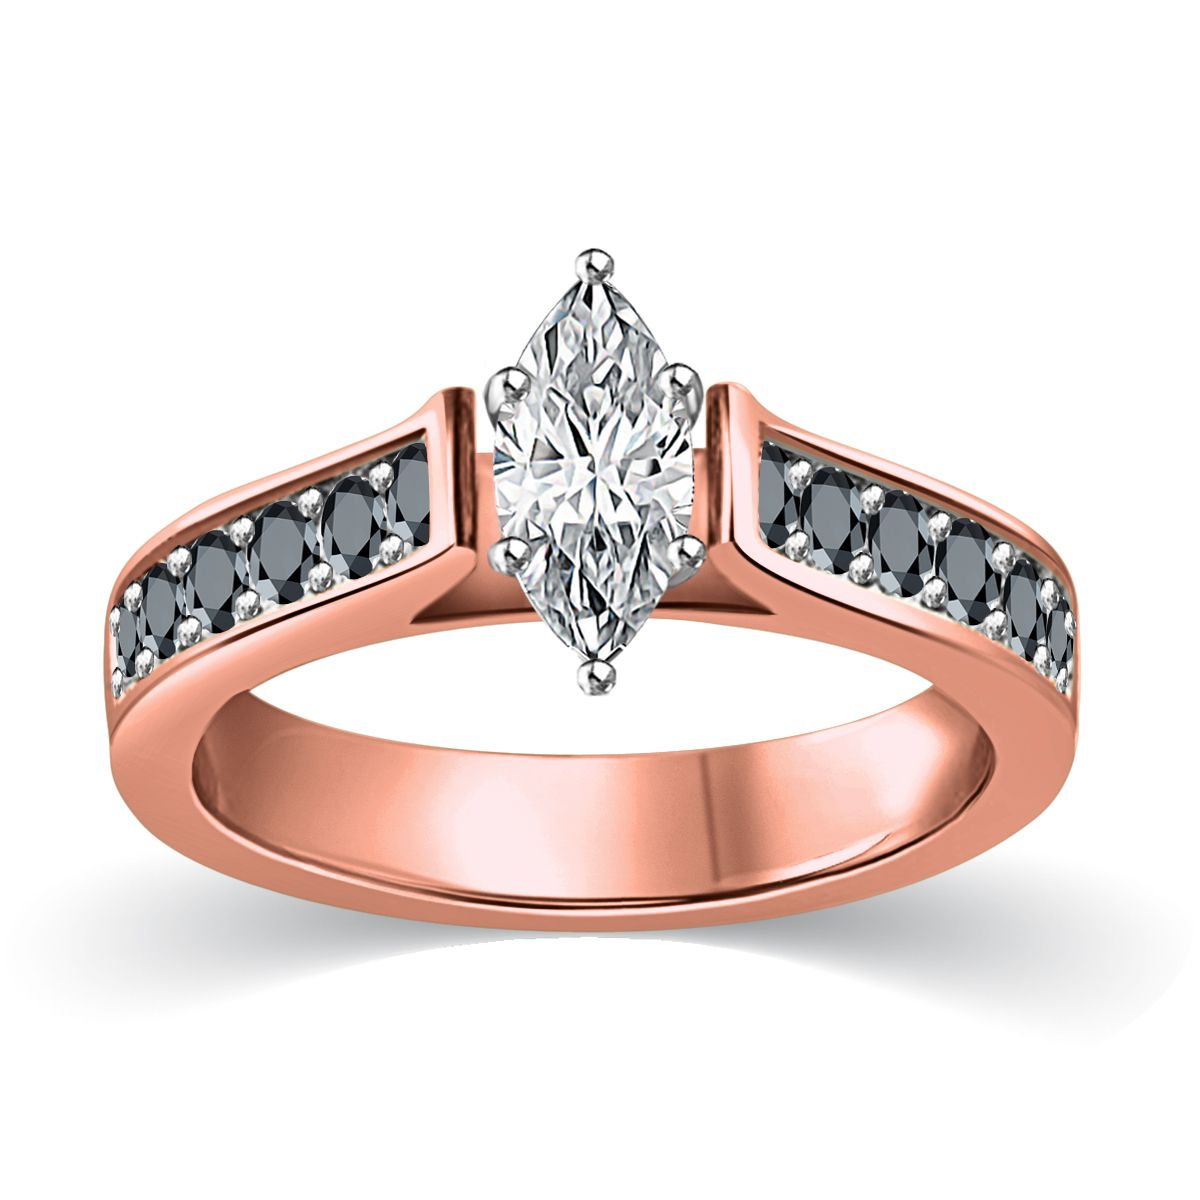 White and black diamond engagement ring marquise cut in rose gold